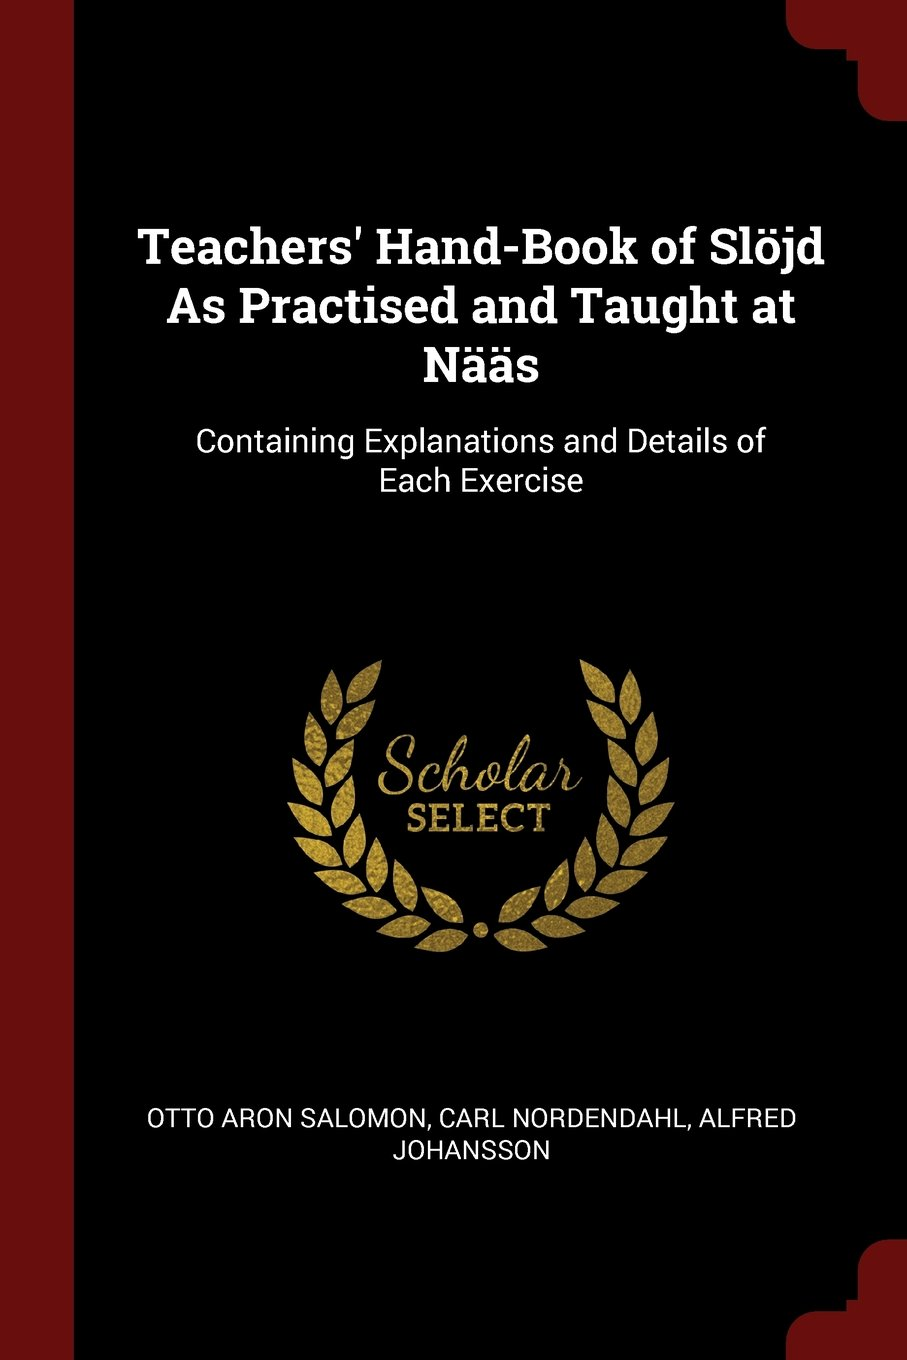 Teachers' Hand-Book of Slöjd As Practised and Taught at Nääs: Containing Explanations and Details of Each Exercise pdf